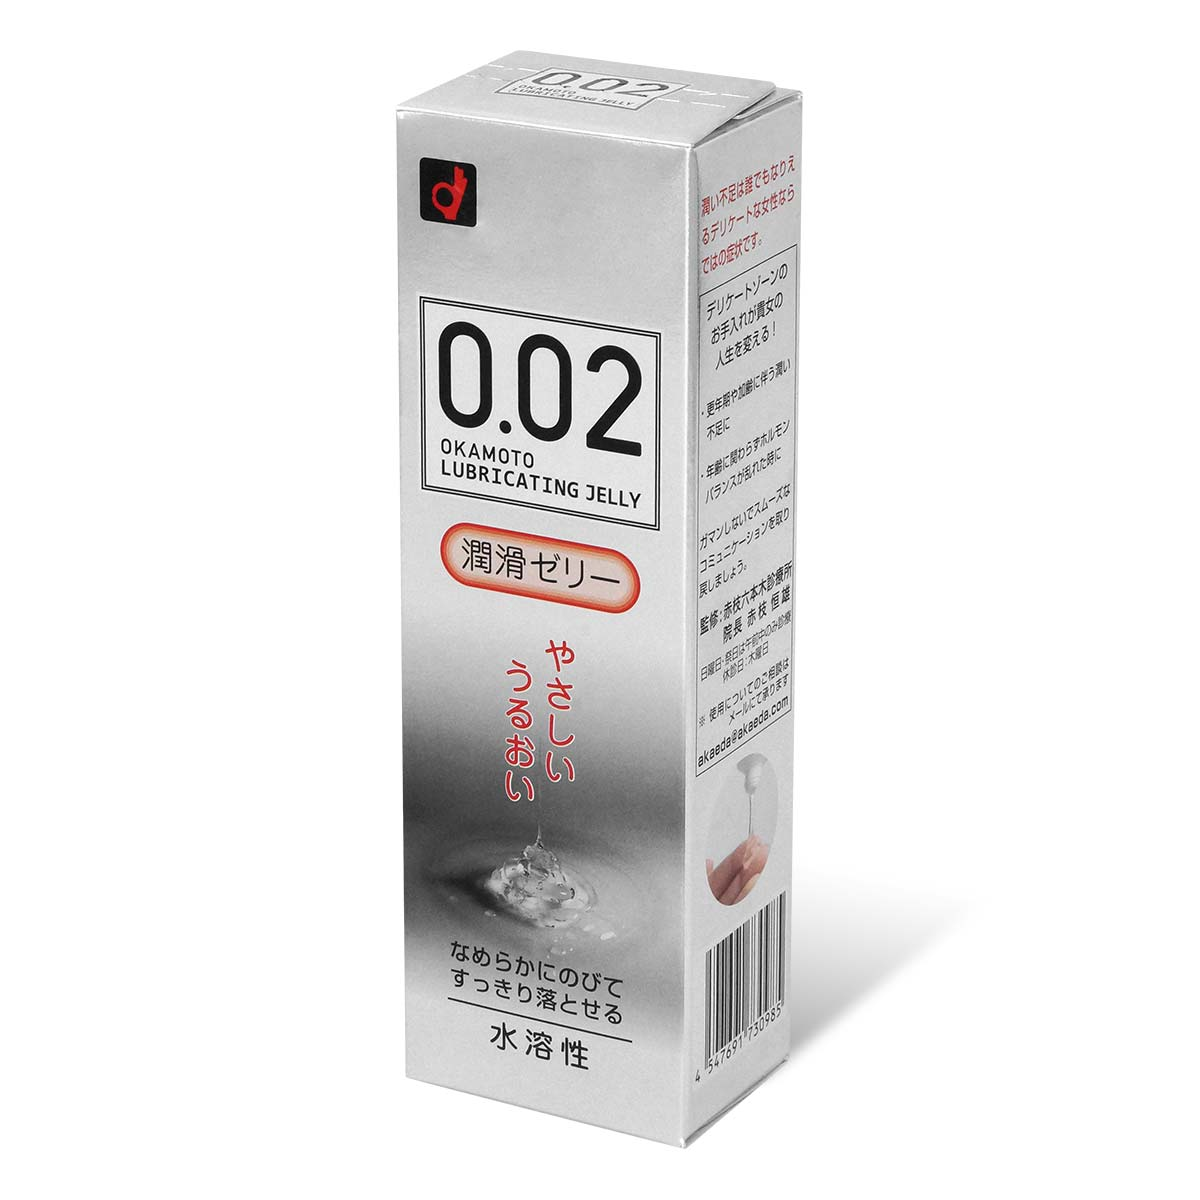 Okamoto 0.02EX Jelly 60g Water-based Lubricant